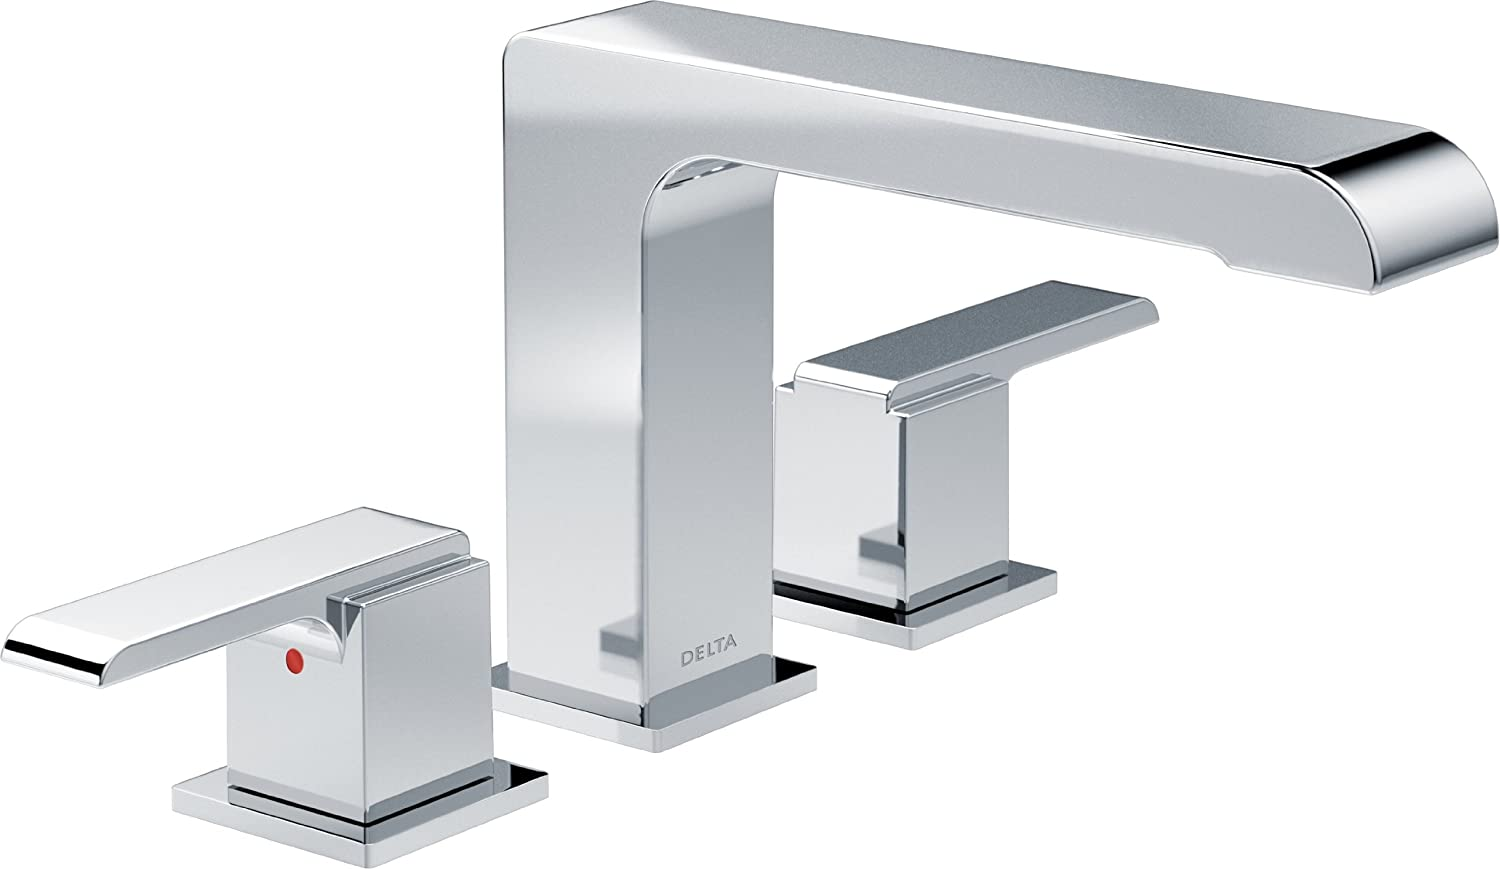 Delta Faucet T2767 Ara Roman Tub Trim 6.69 x 16.00 x 8.19 inches Chrome